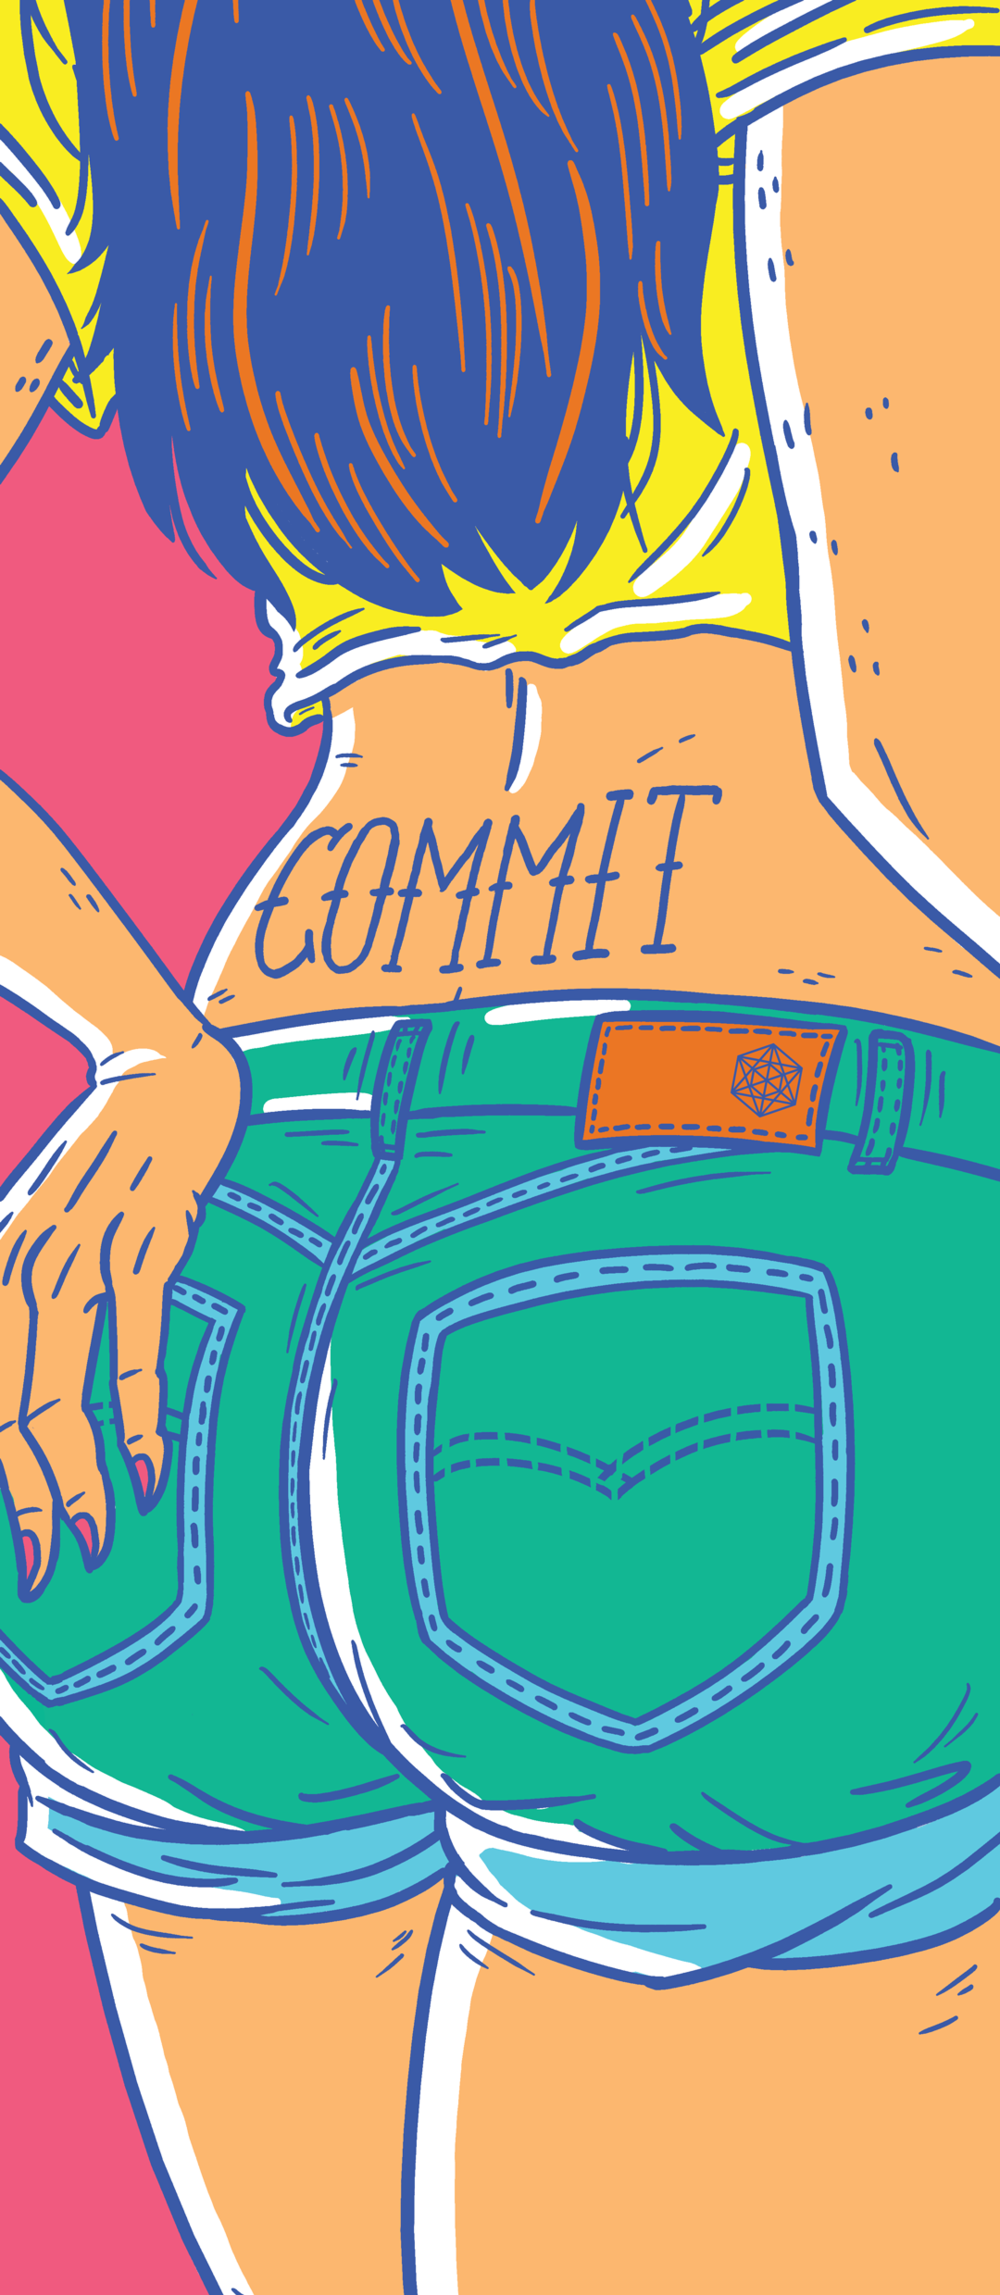 commitdeck_booty_01b.png